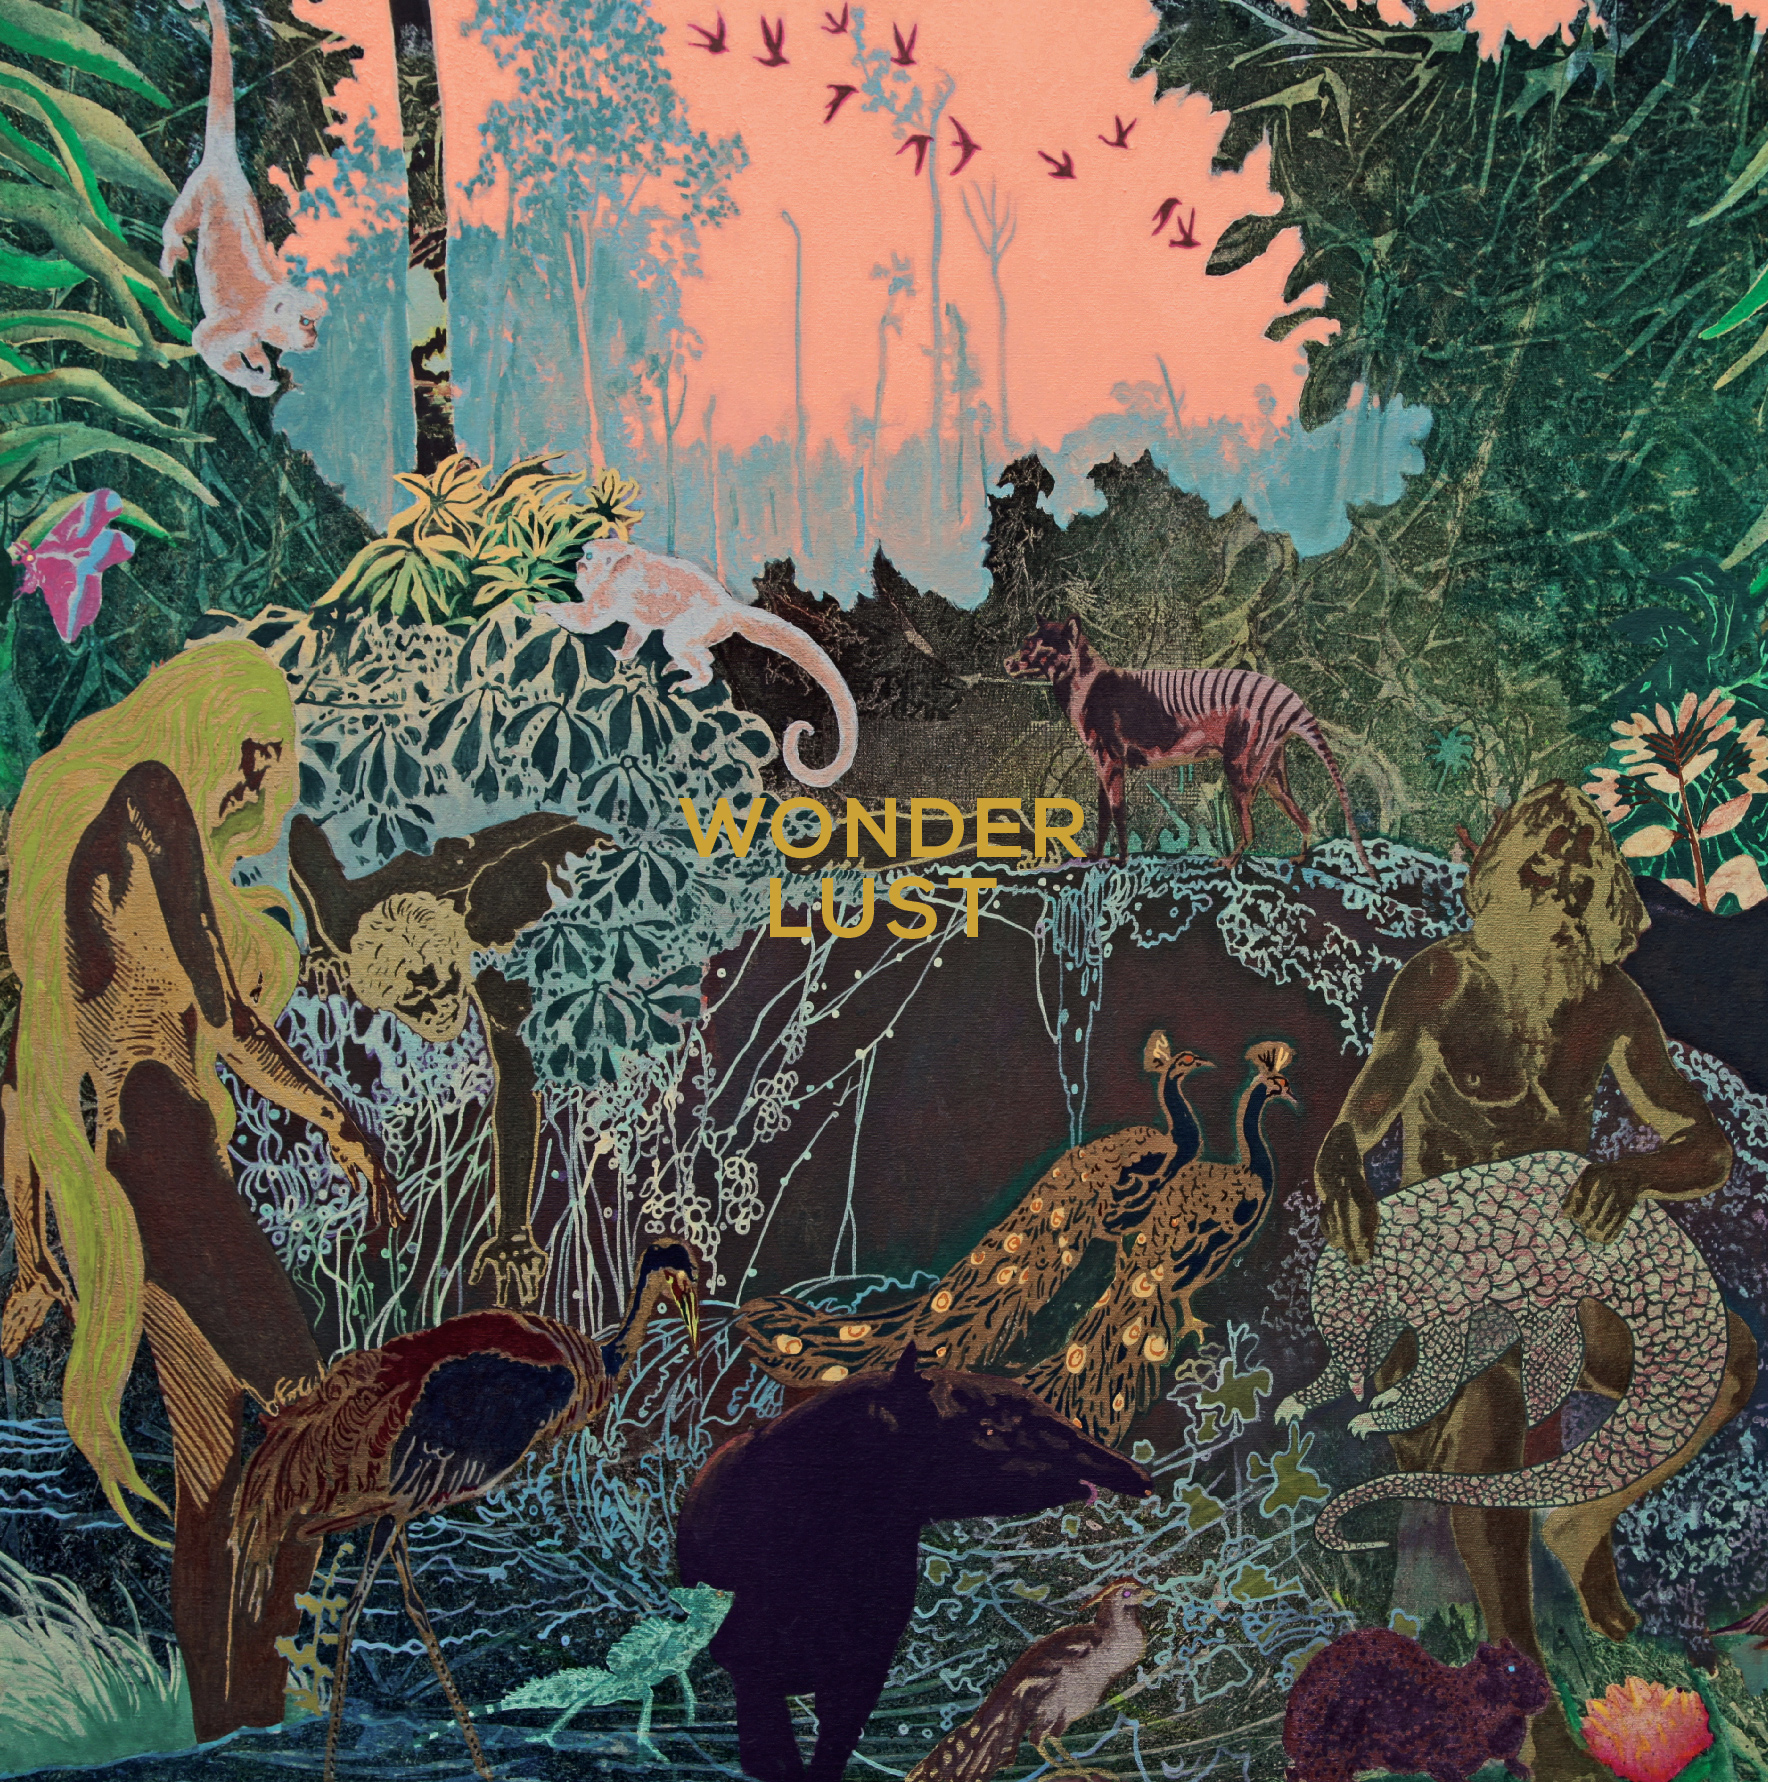 WONDER LUST - MORE SONGS ABOUT HEARTS, LIPS, KENTUCKY ON OHIO AND THE COMINGS AND GOINGS OF THE LUSTER, LORE AND LURE OF LOVE AND LUST.